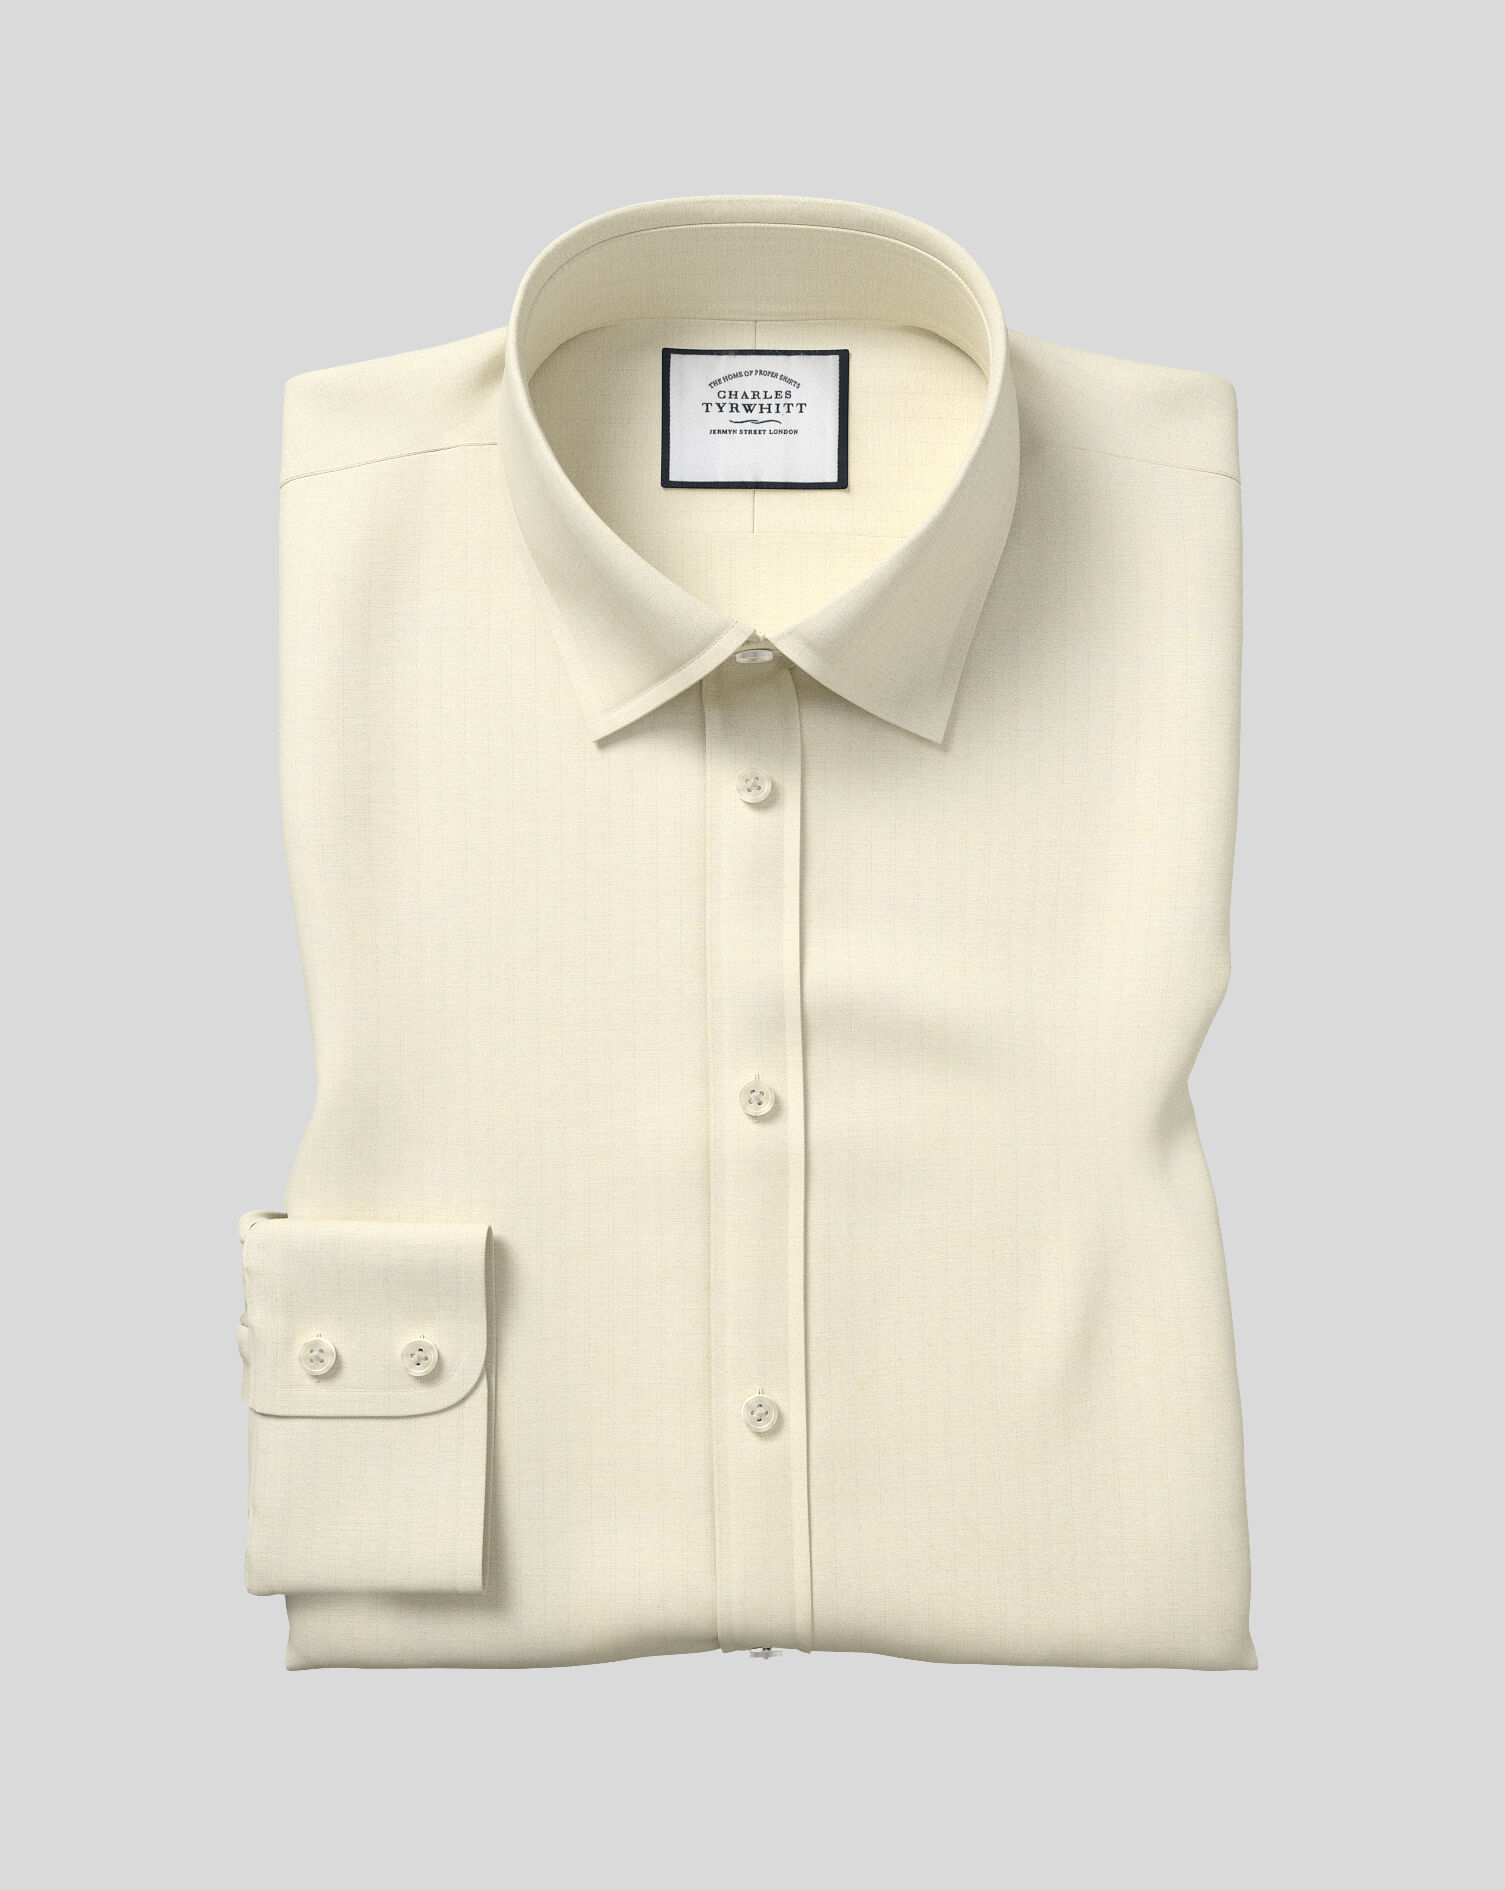 THE BEST IVORY SWEPT WING COLLAR WEDDING SHIRT ON .CO.UK ONLY ALL SIZES